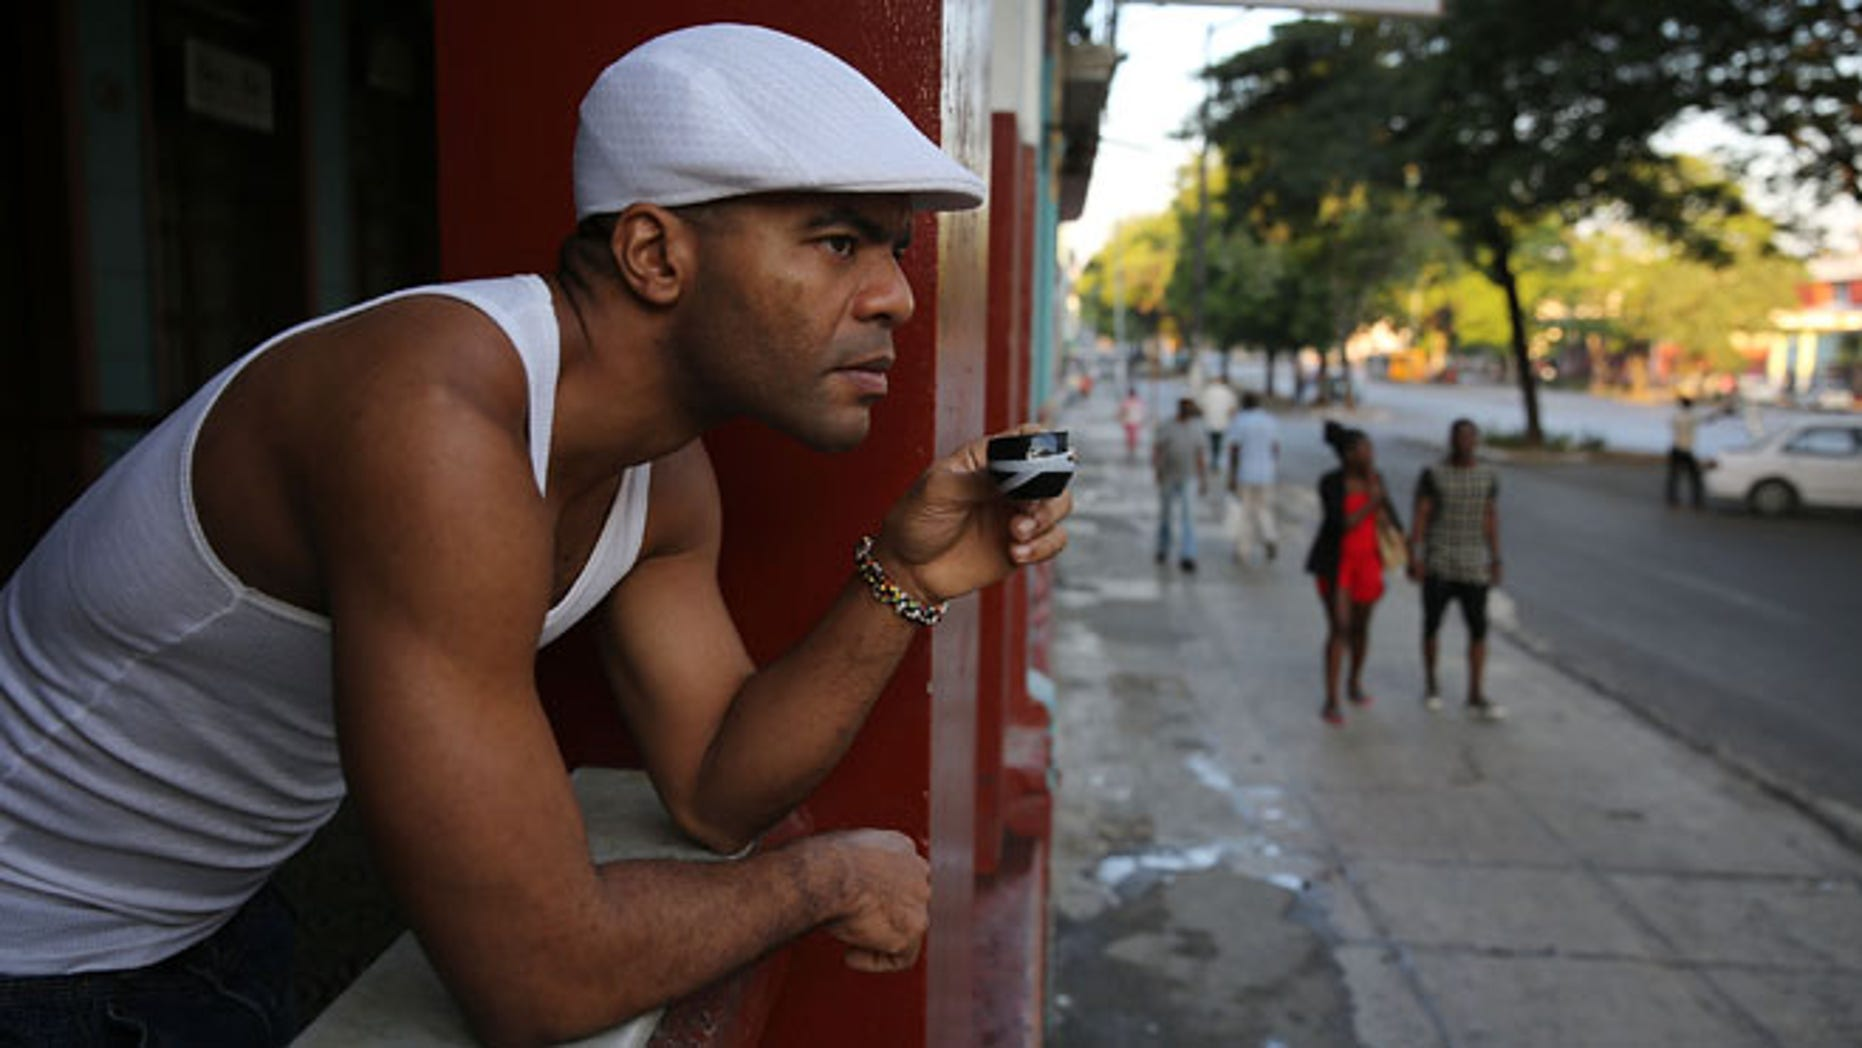 A man has his morning coffee in Havana, Cuba. (Photo by Joe Raedle/Getty Images)